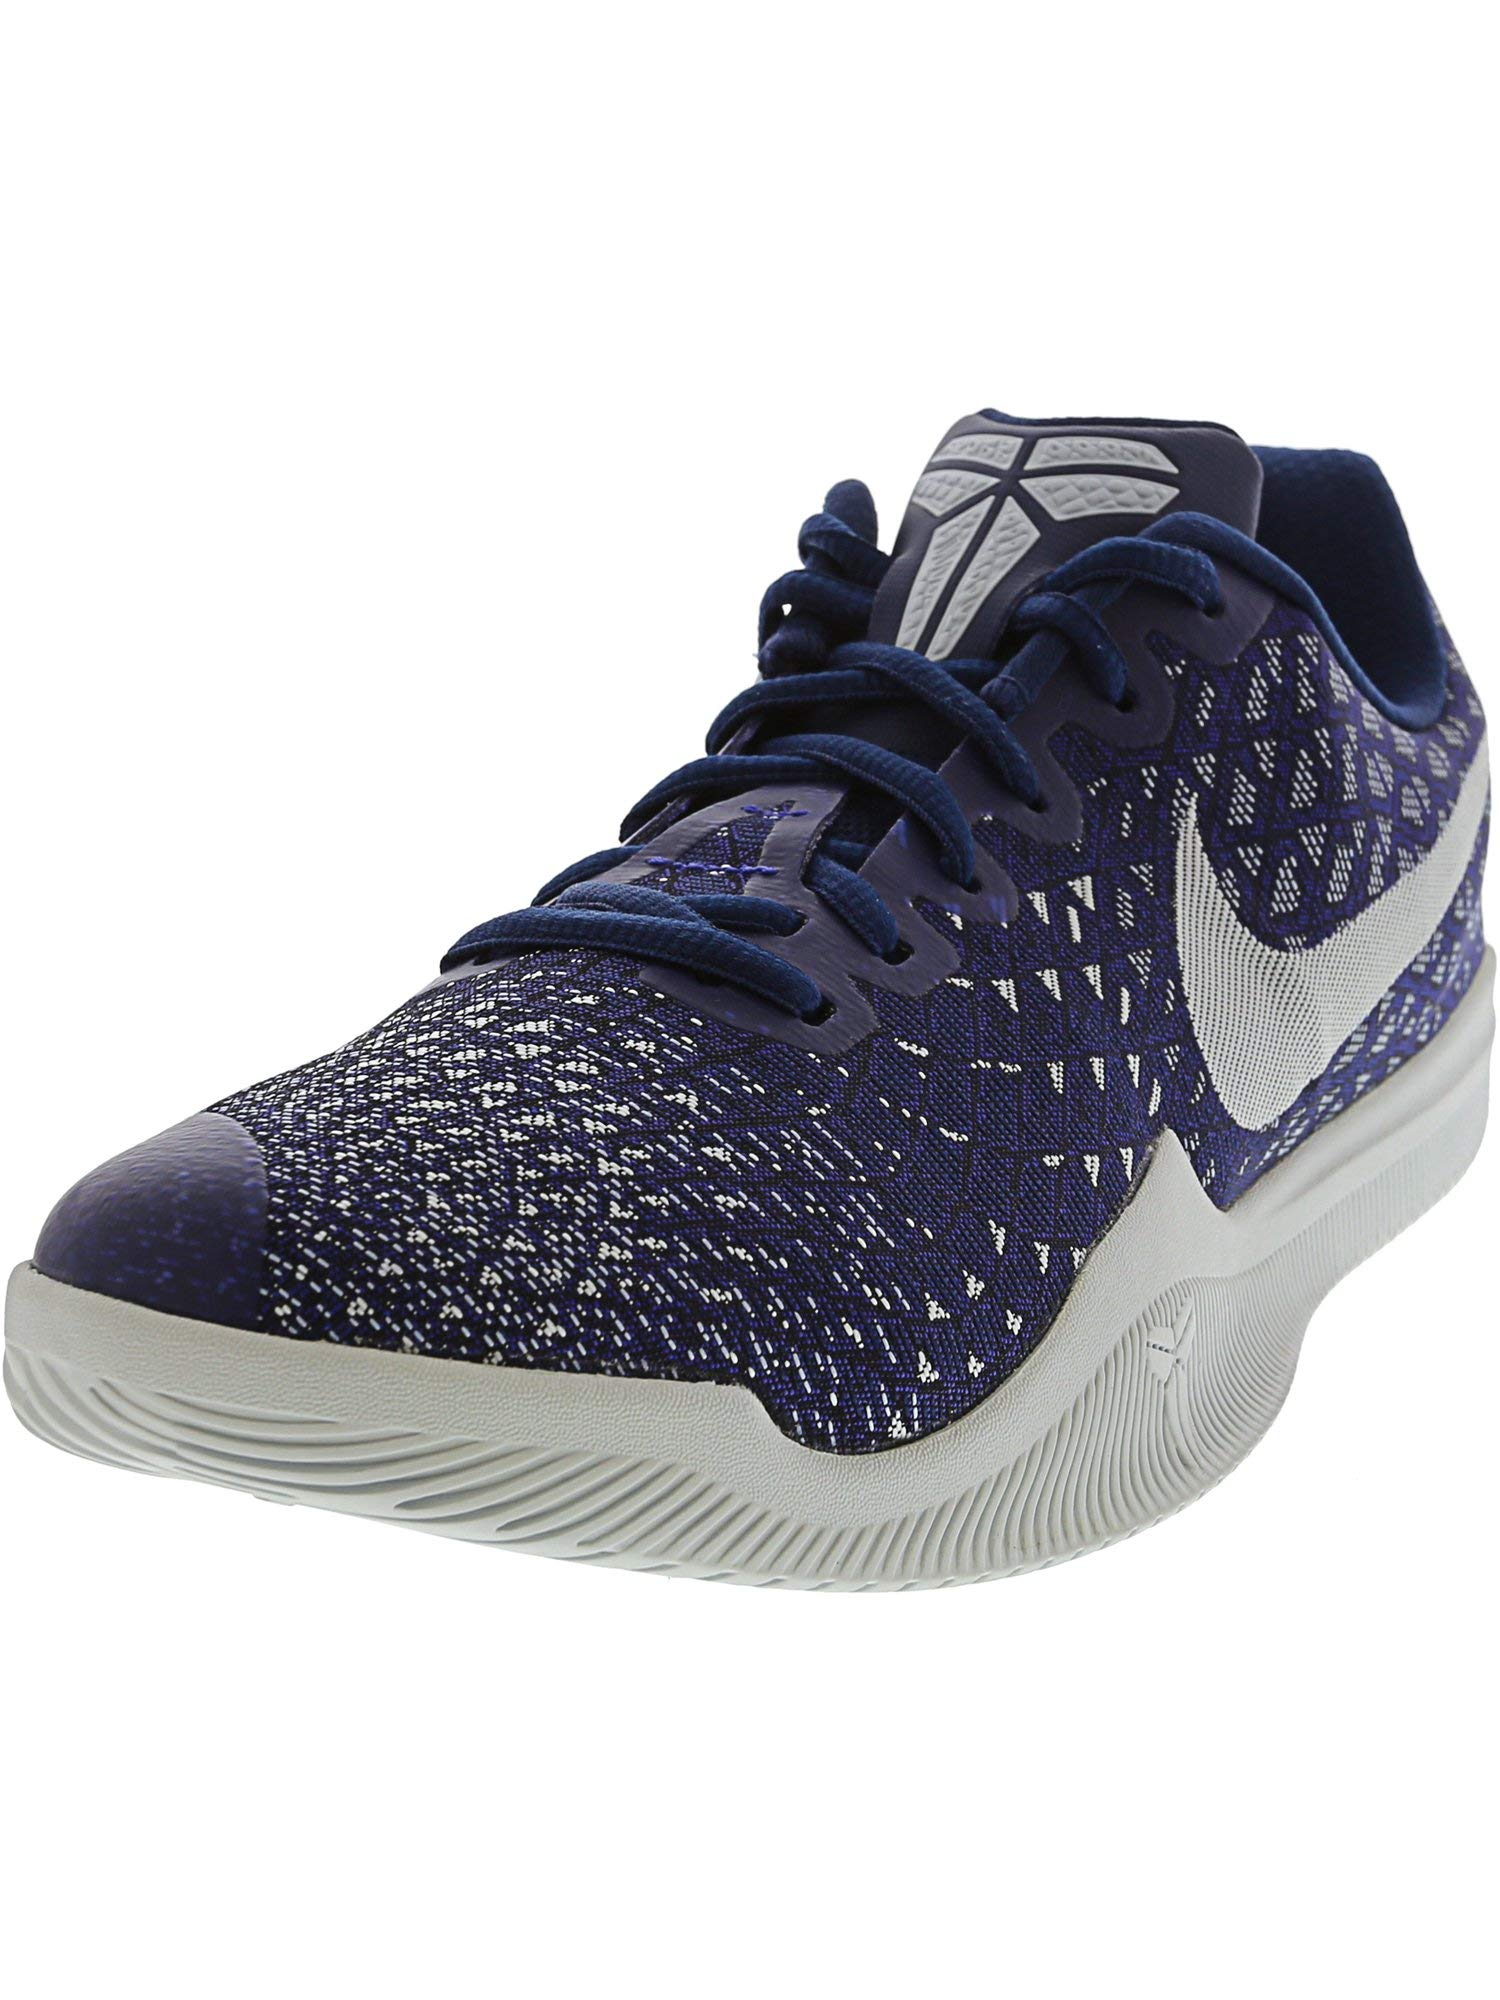 944cc1e4cd3f Galleon - Nike Kobe Mamba Instinct Mens Basketball Shoes (9) Navy Blue